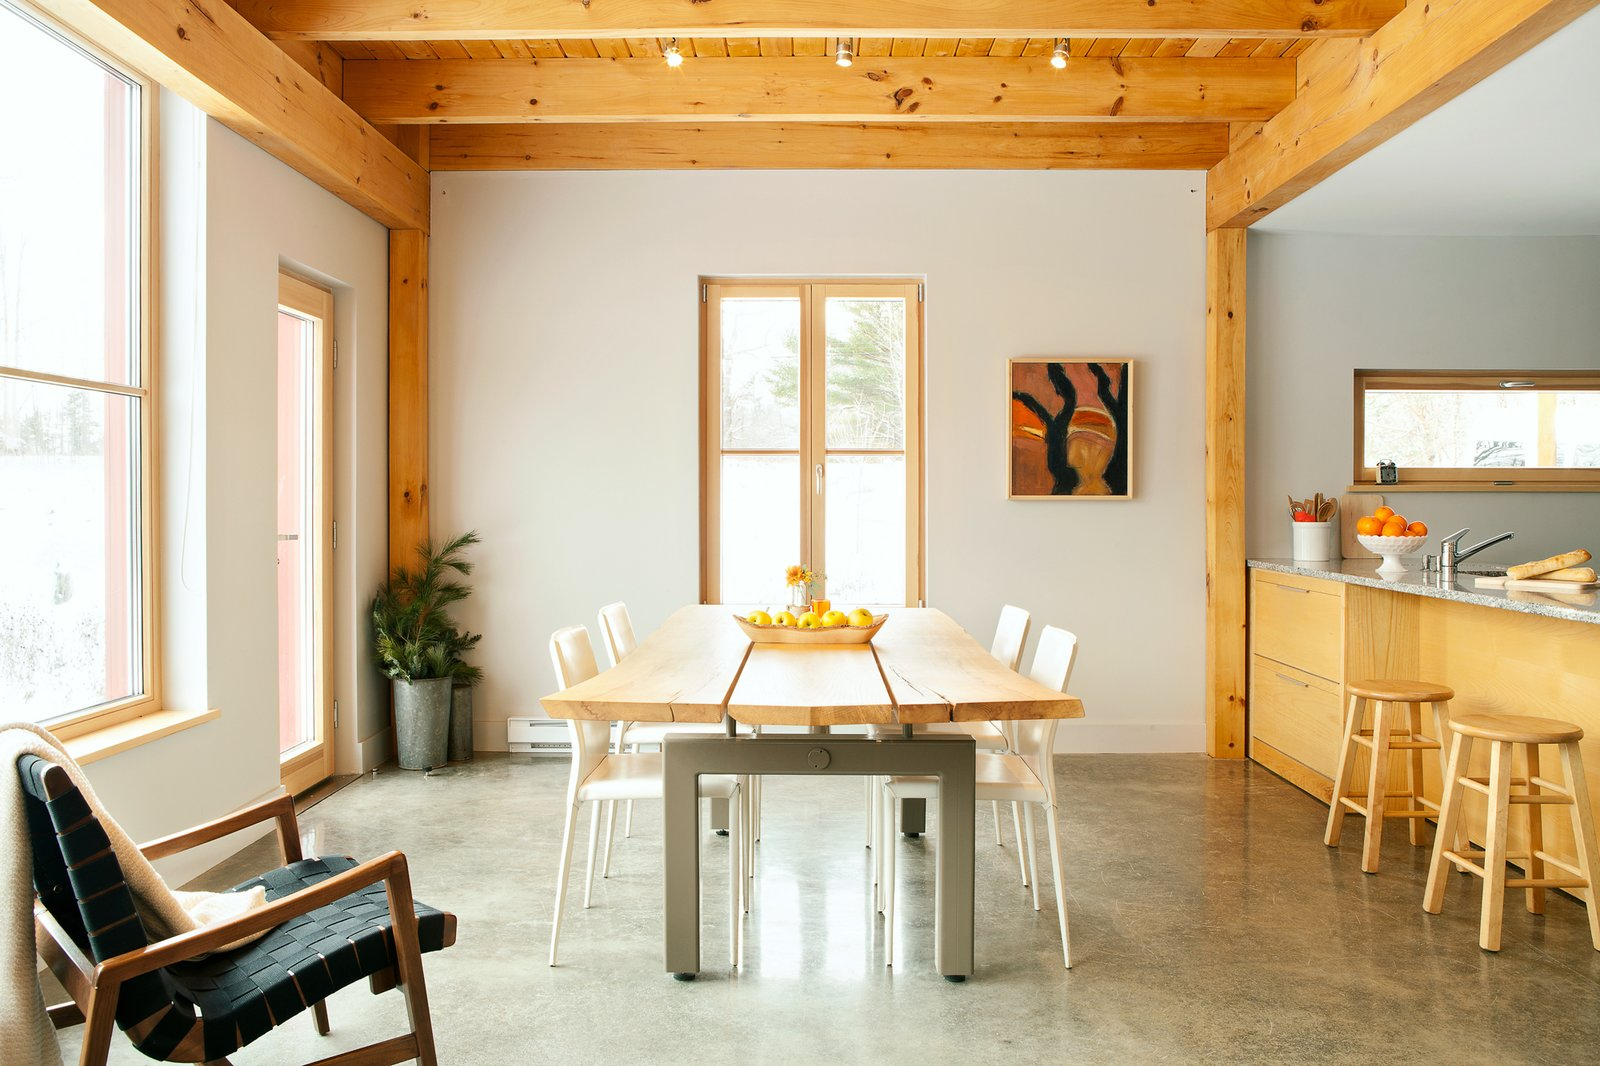 Dining Room, Track Lighting, Table, Concrete Floor, Stools, Bar, and Chair  Photo 7 of 10 in GO Home Takes the Passive House Approach to Prefab